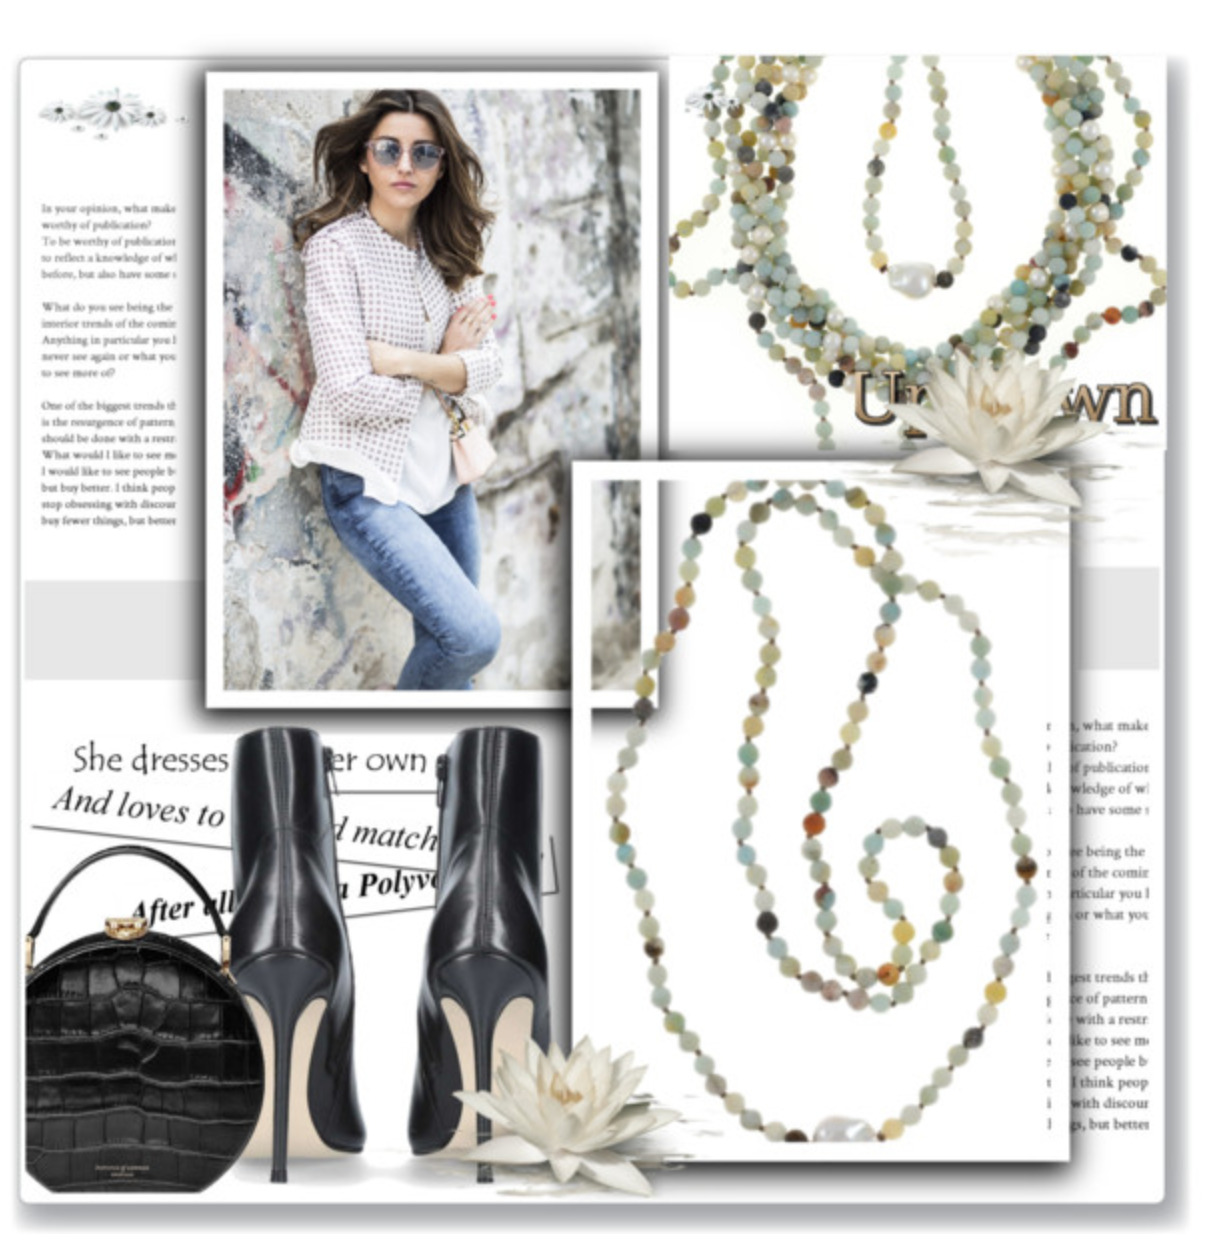 caledonia-pearl-and-amazonite-necklace-by-amra.jpg